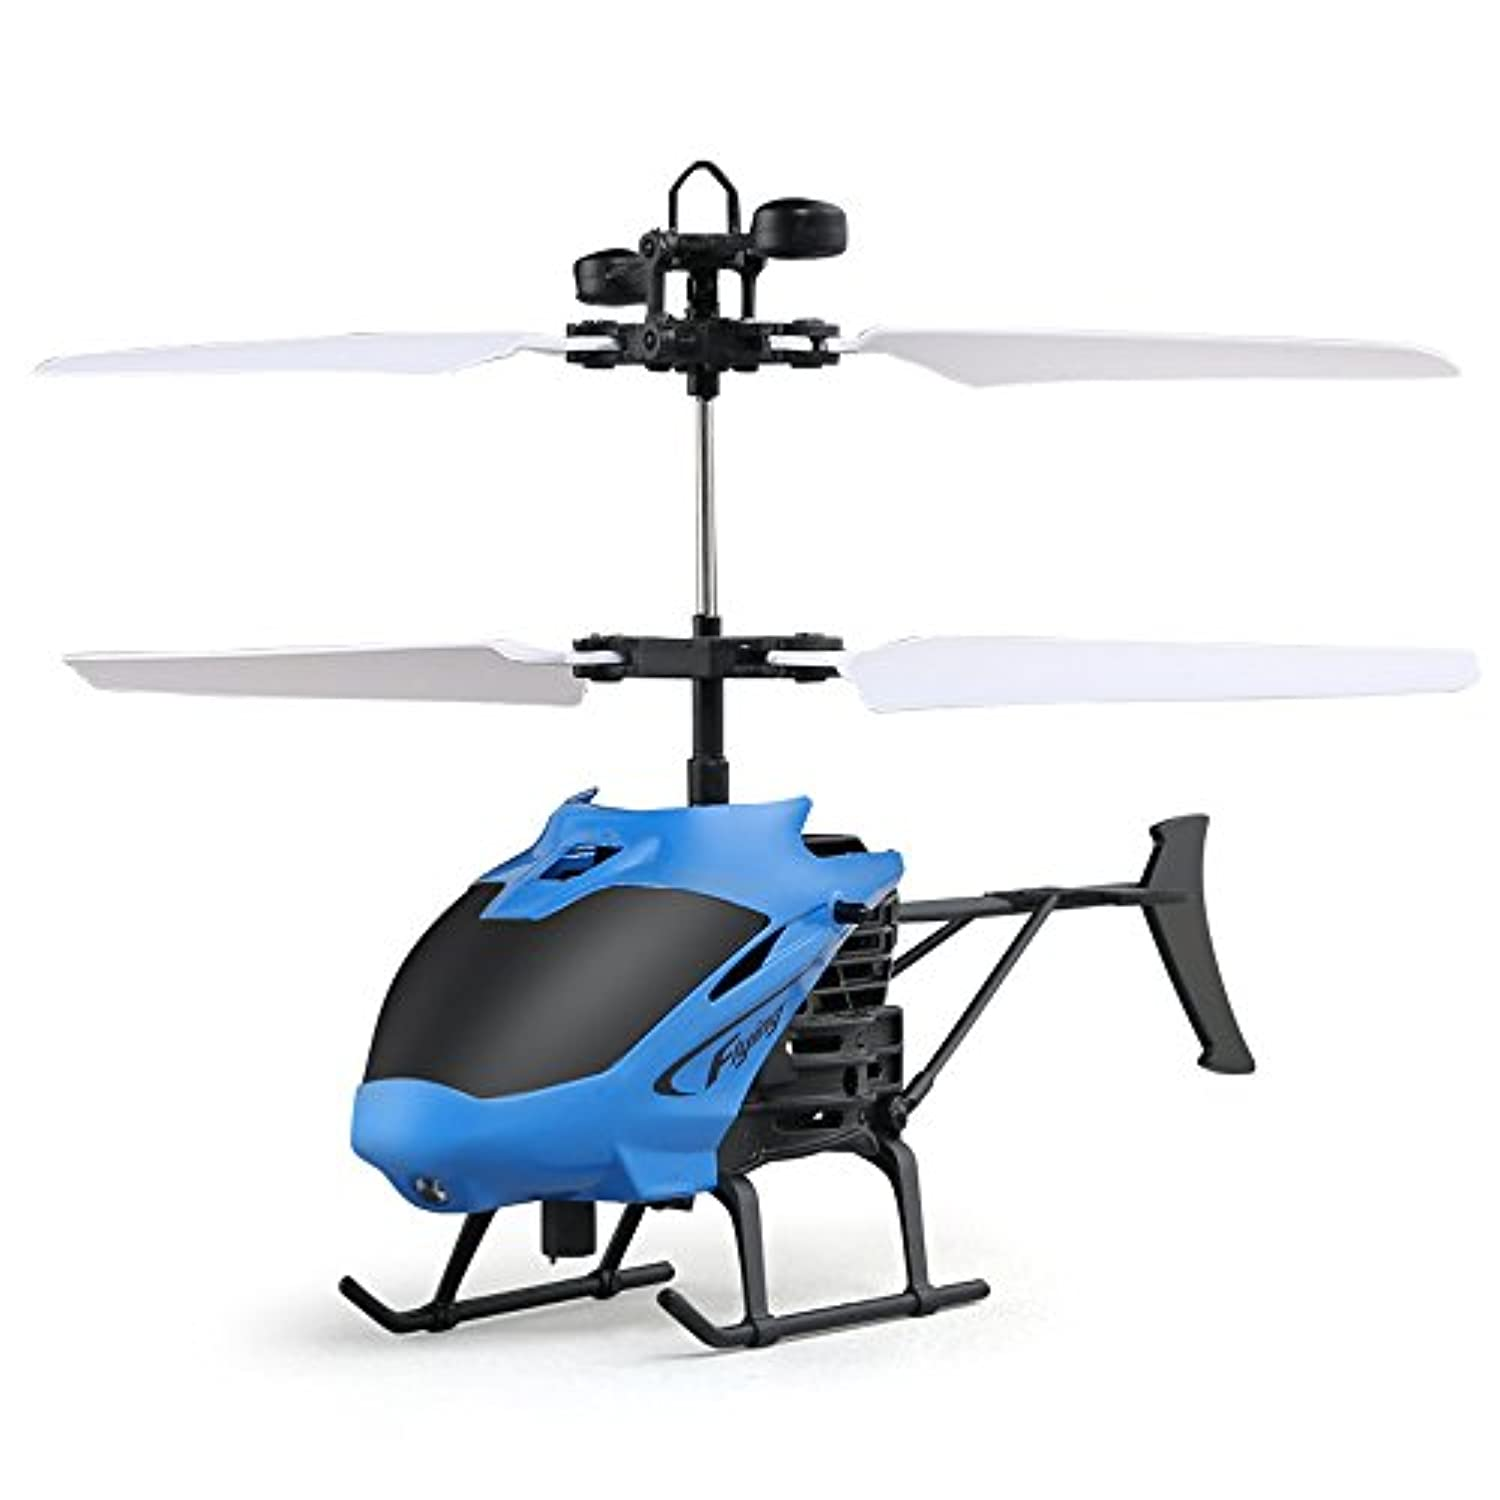 Helicopter Flying Mini RC航空機Infraed誘導点滅ライトおもちゃforキッド